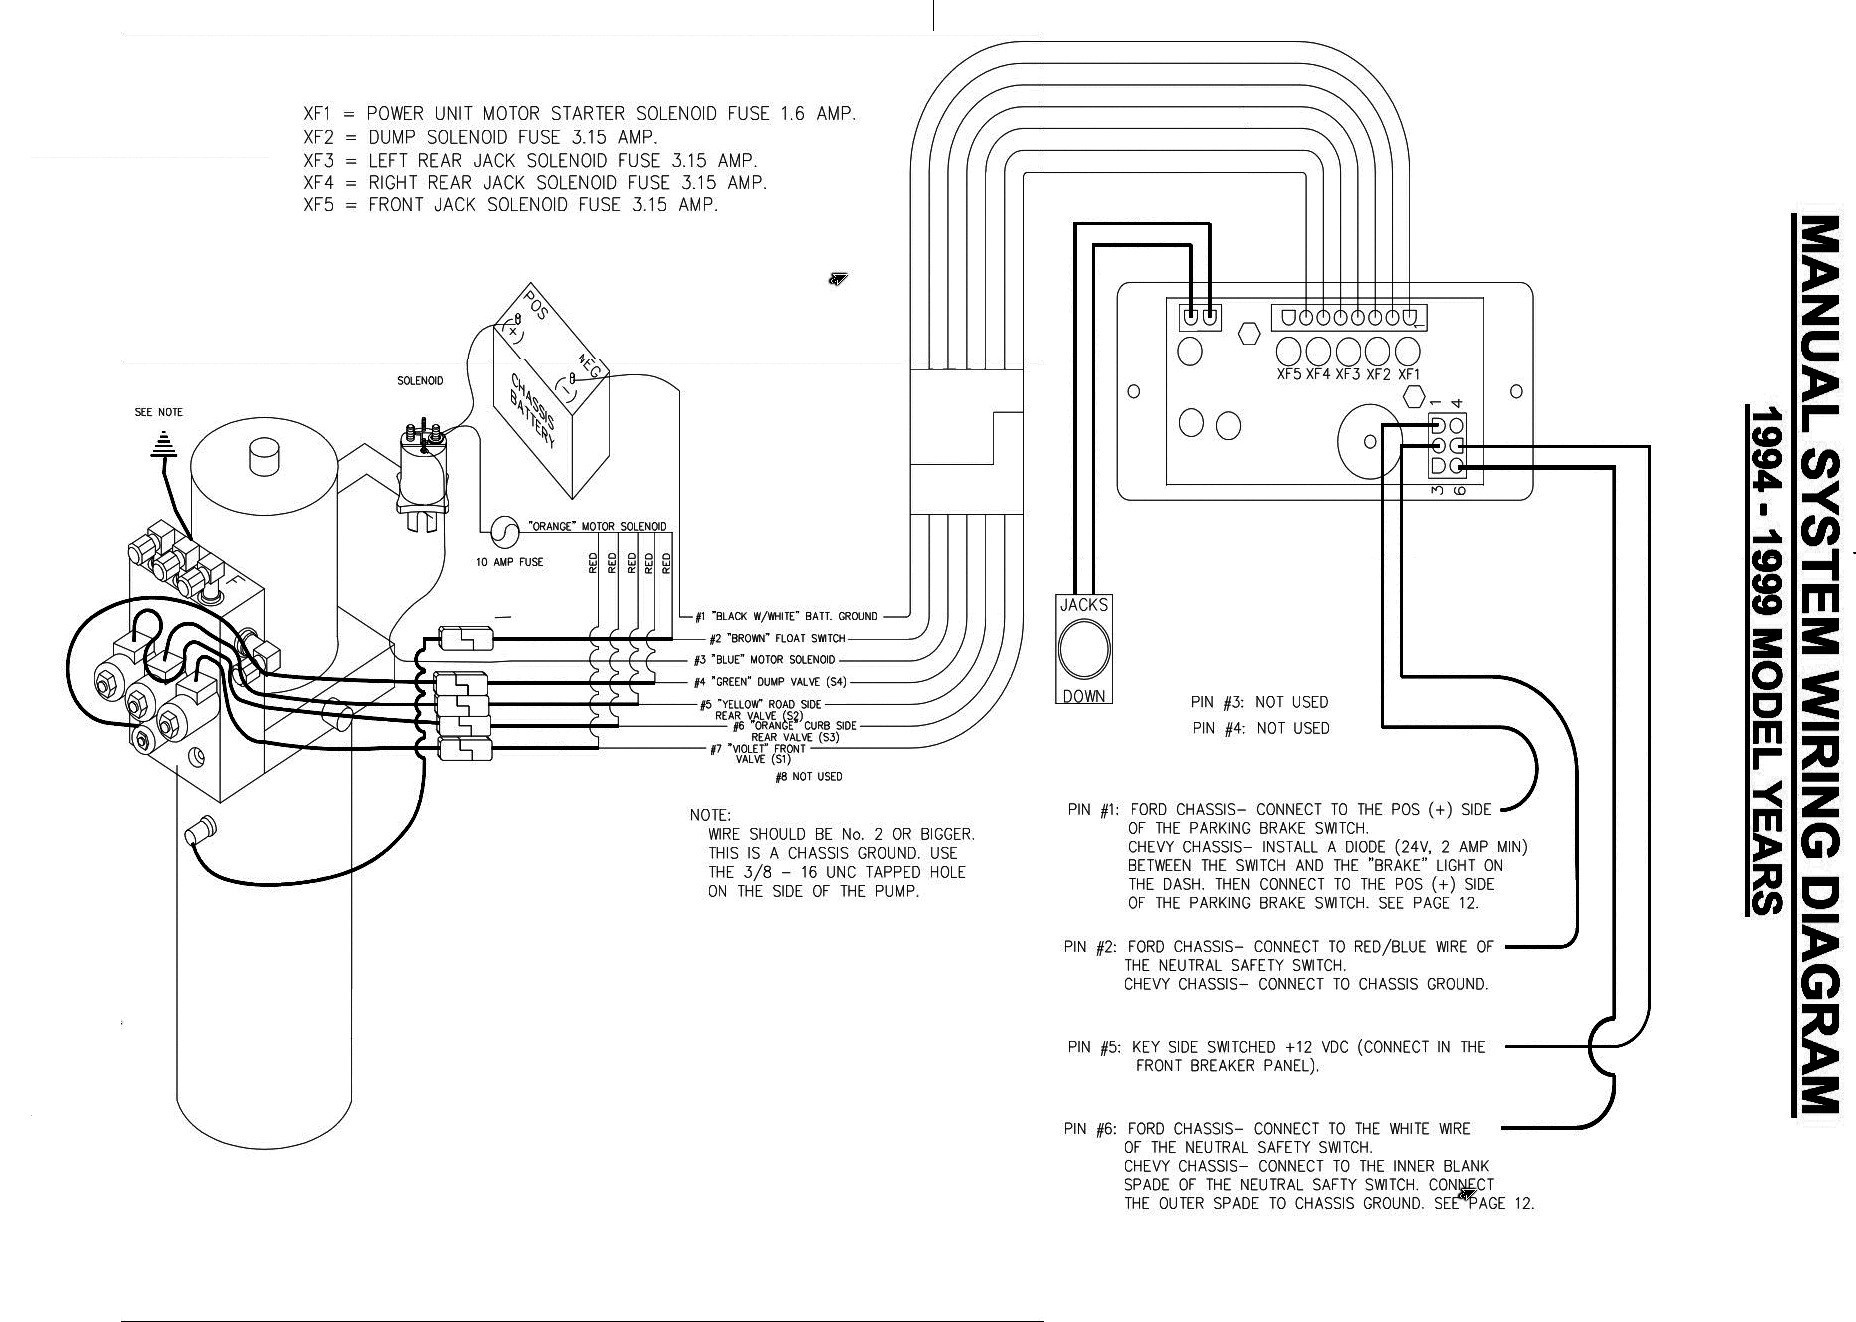 1996 Cummins N14 Ecm Diagram On Mins M11 Ecm Wiring Diagram